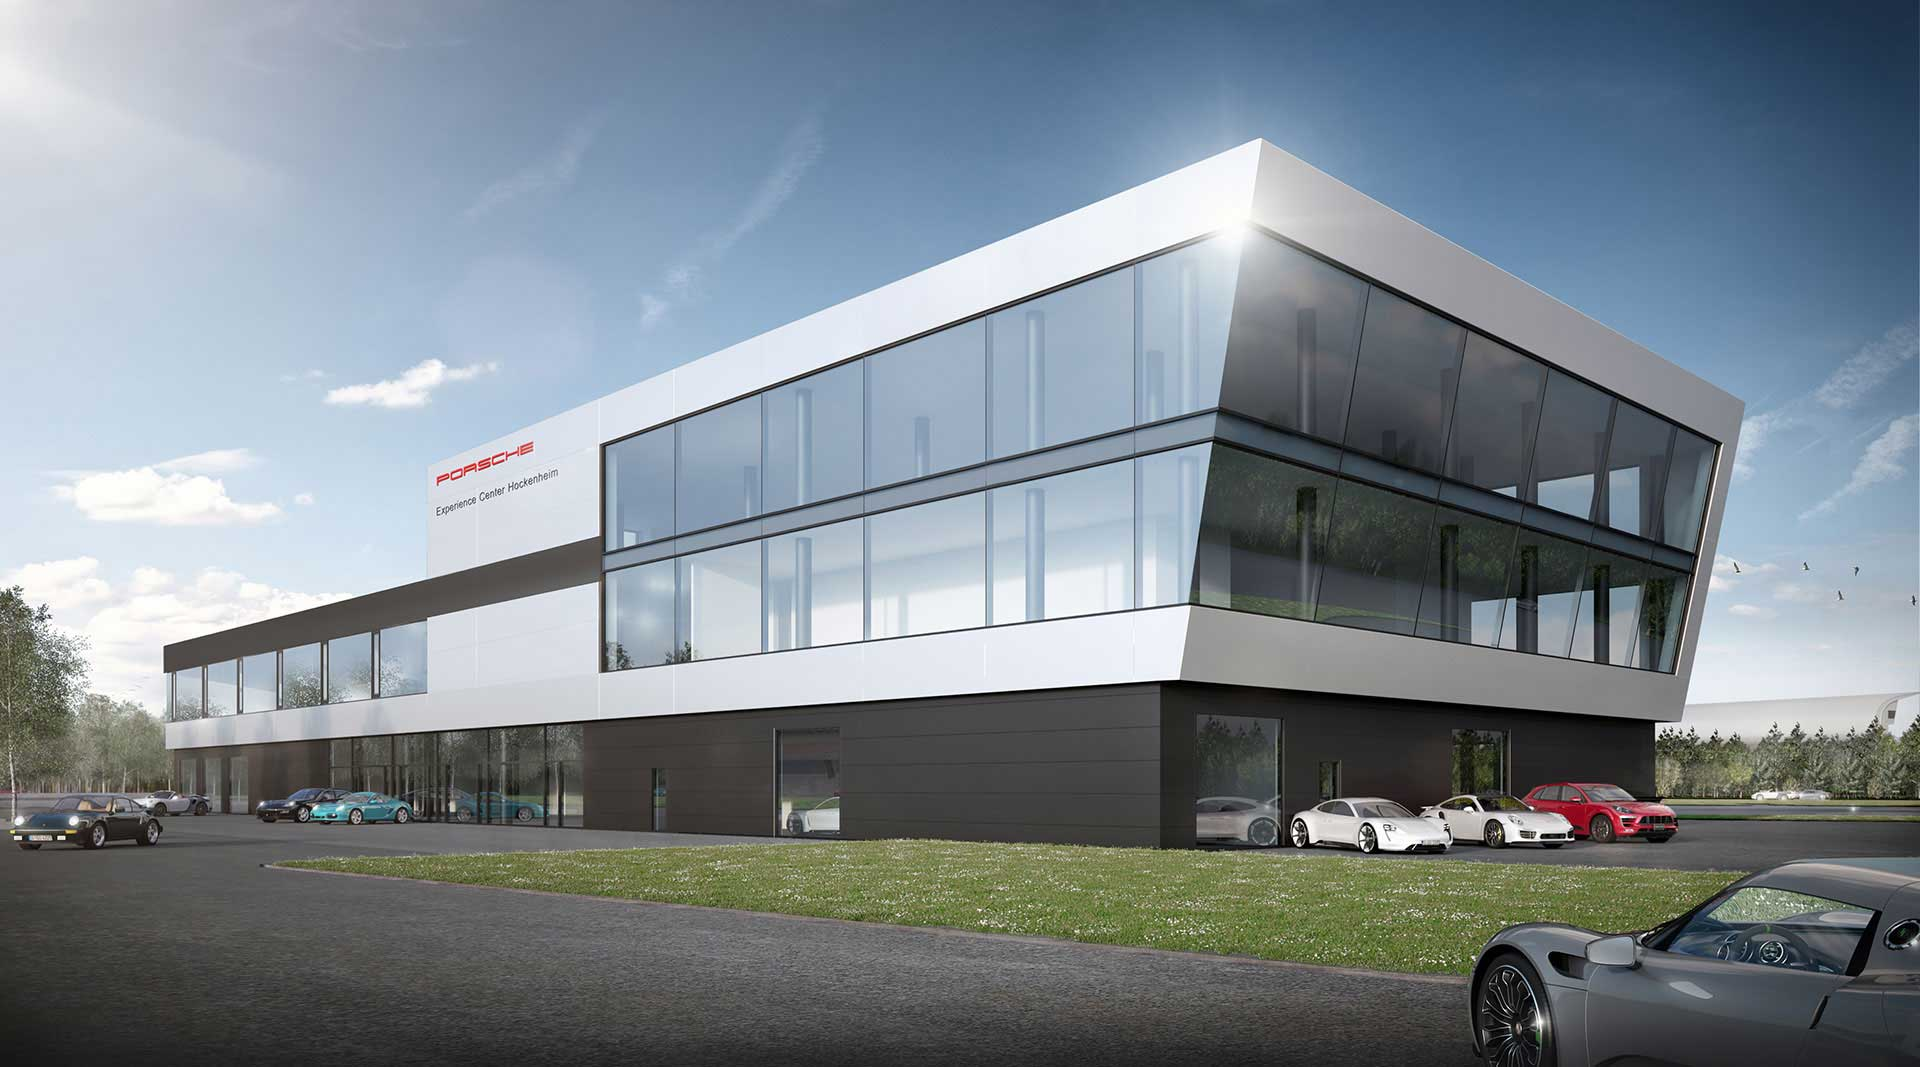 Porsche Experience Center Hockenheimring - by emodrom